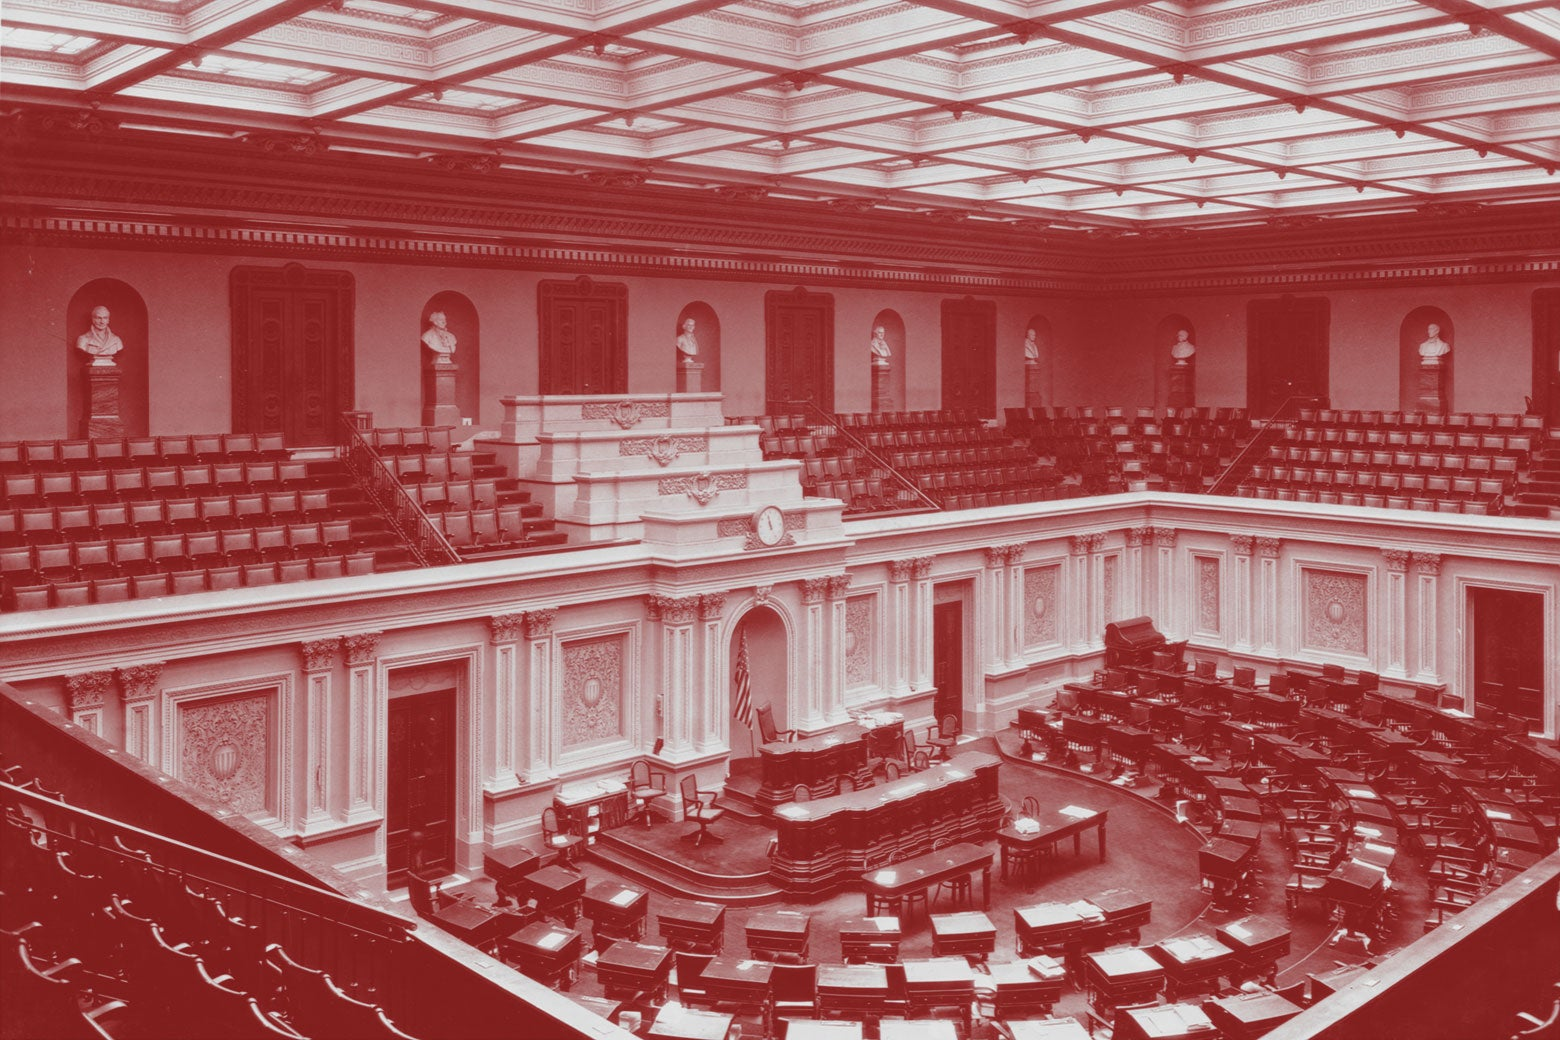 The Senate chamber in the U.S. Capitol.